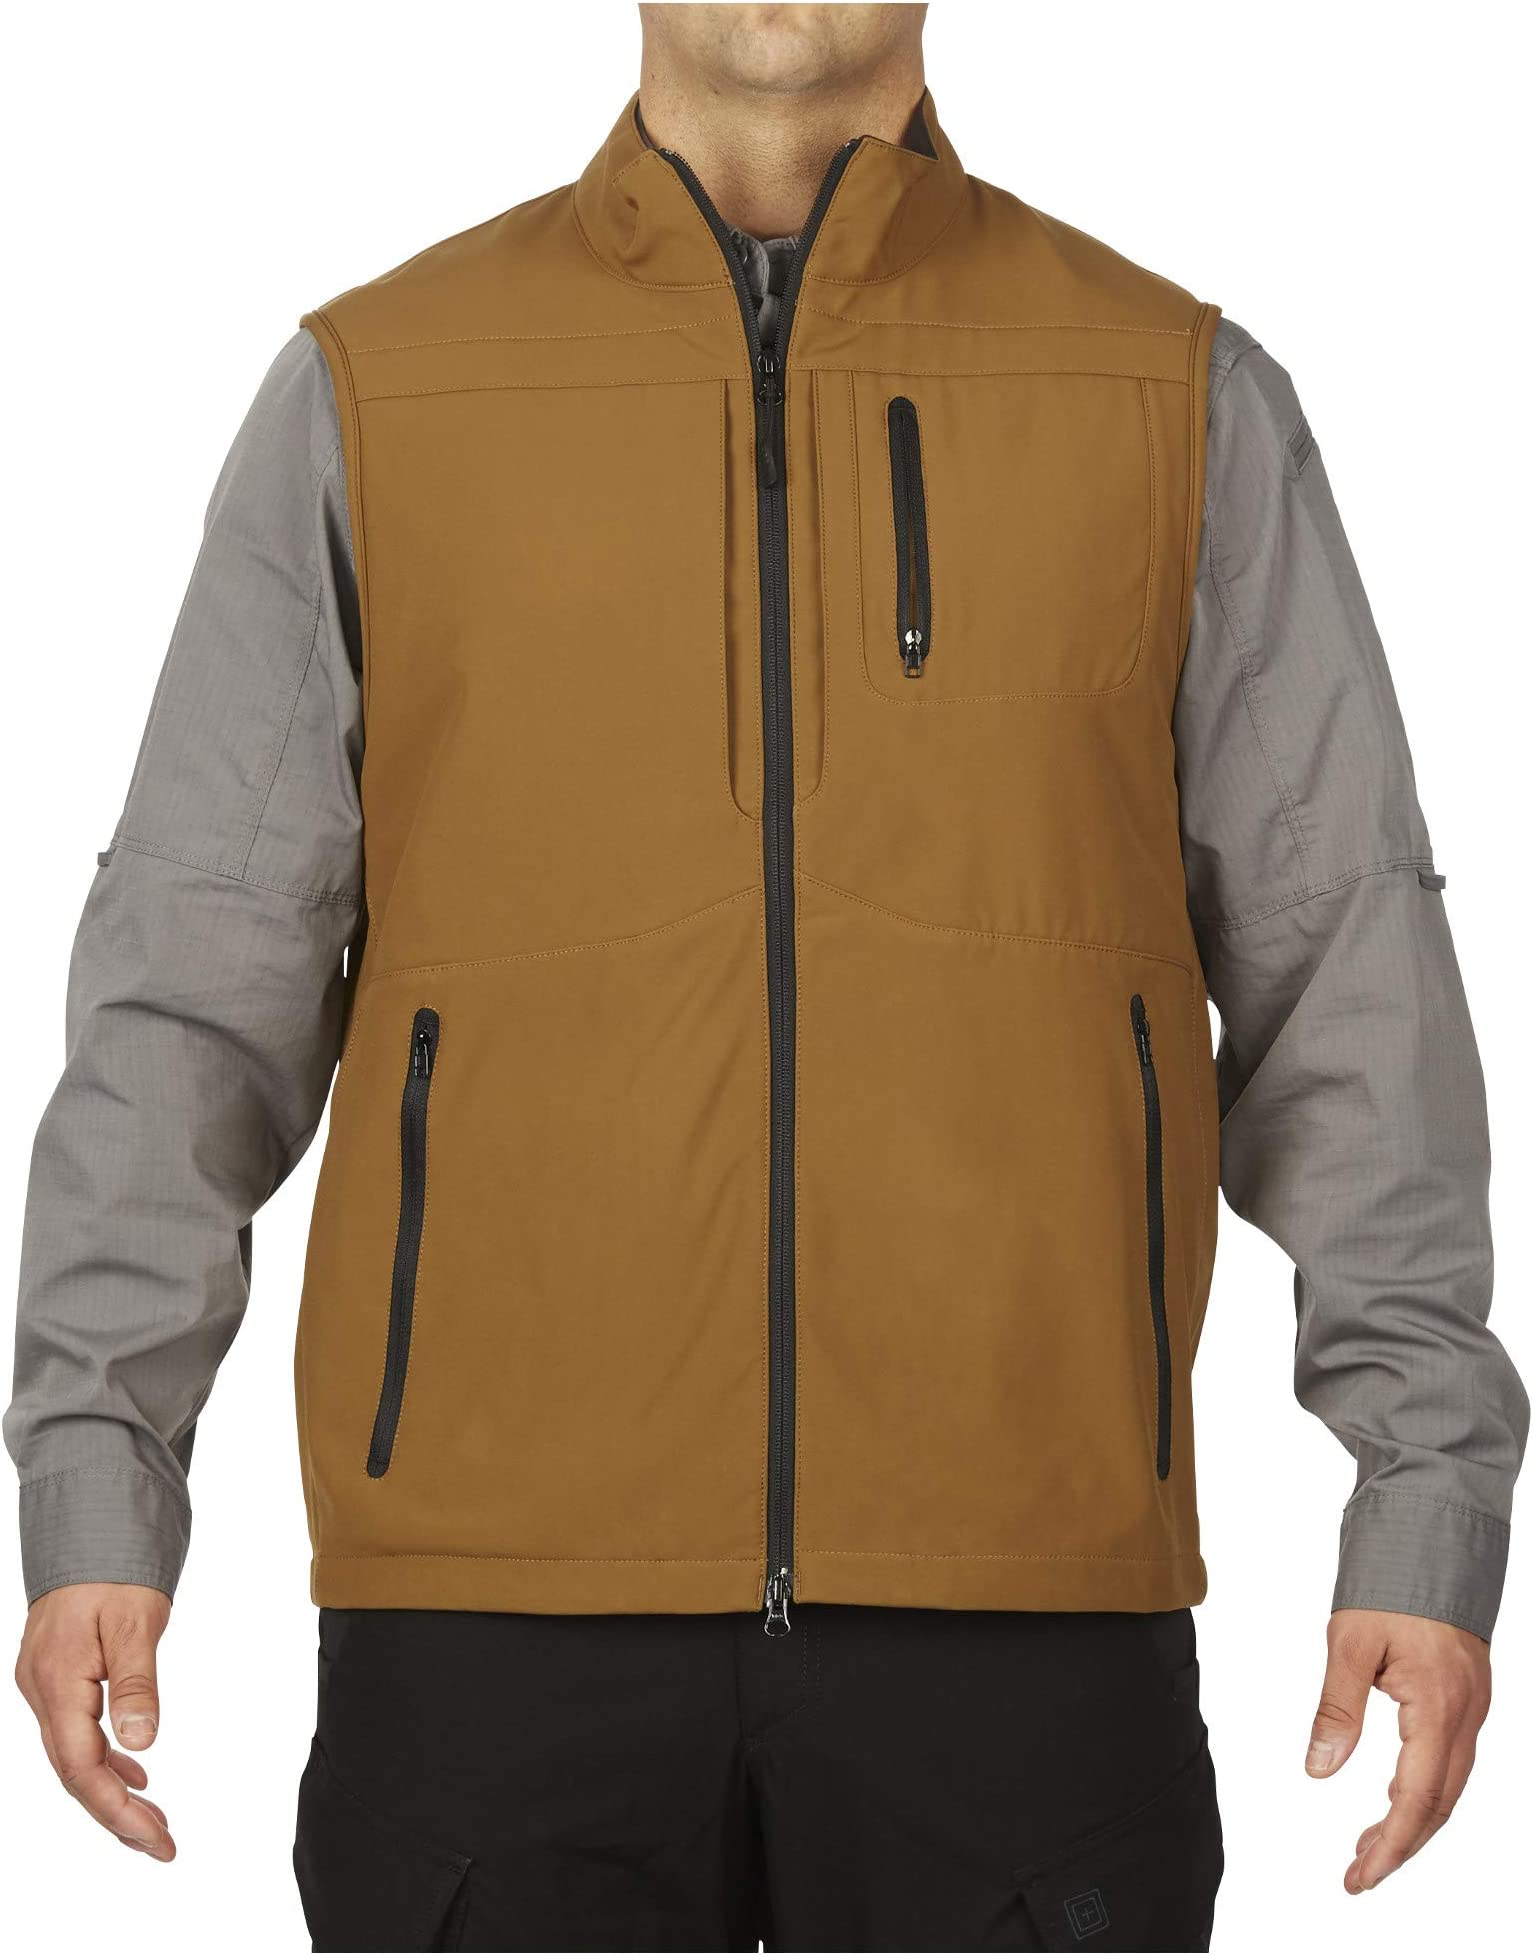 5.11 Tactical Men's Covert